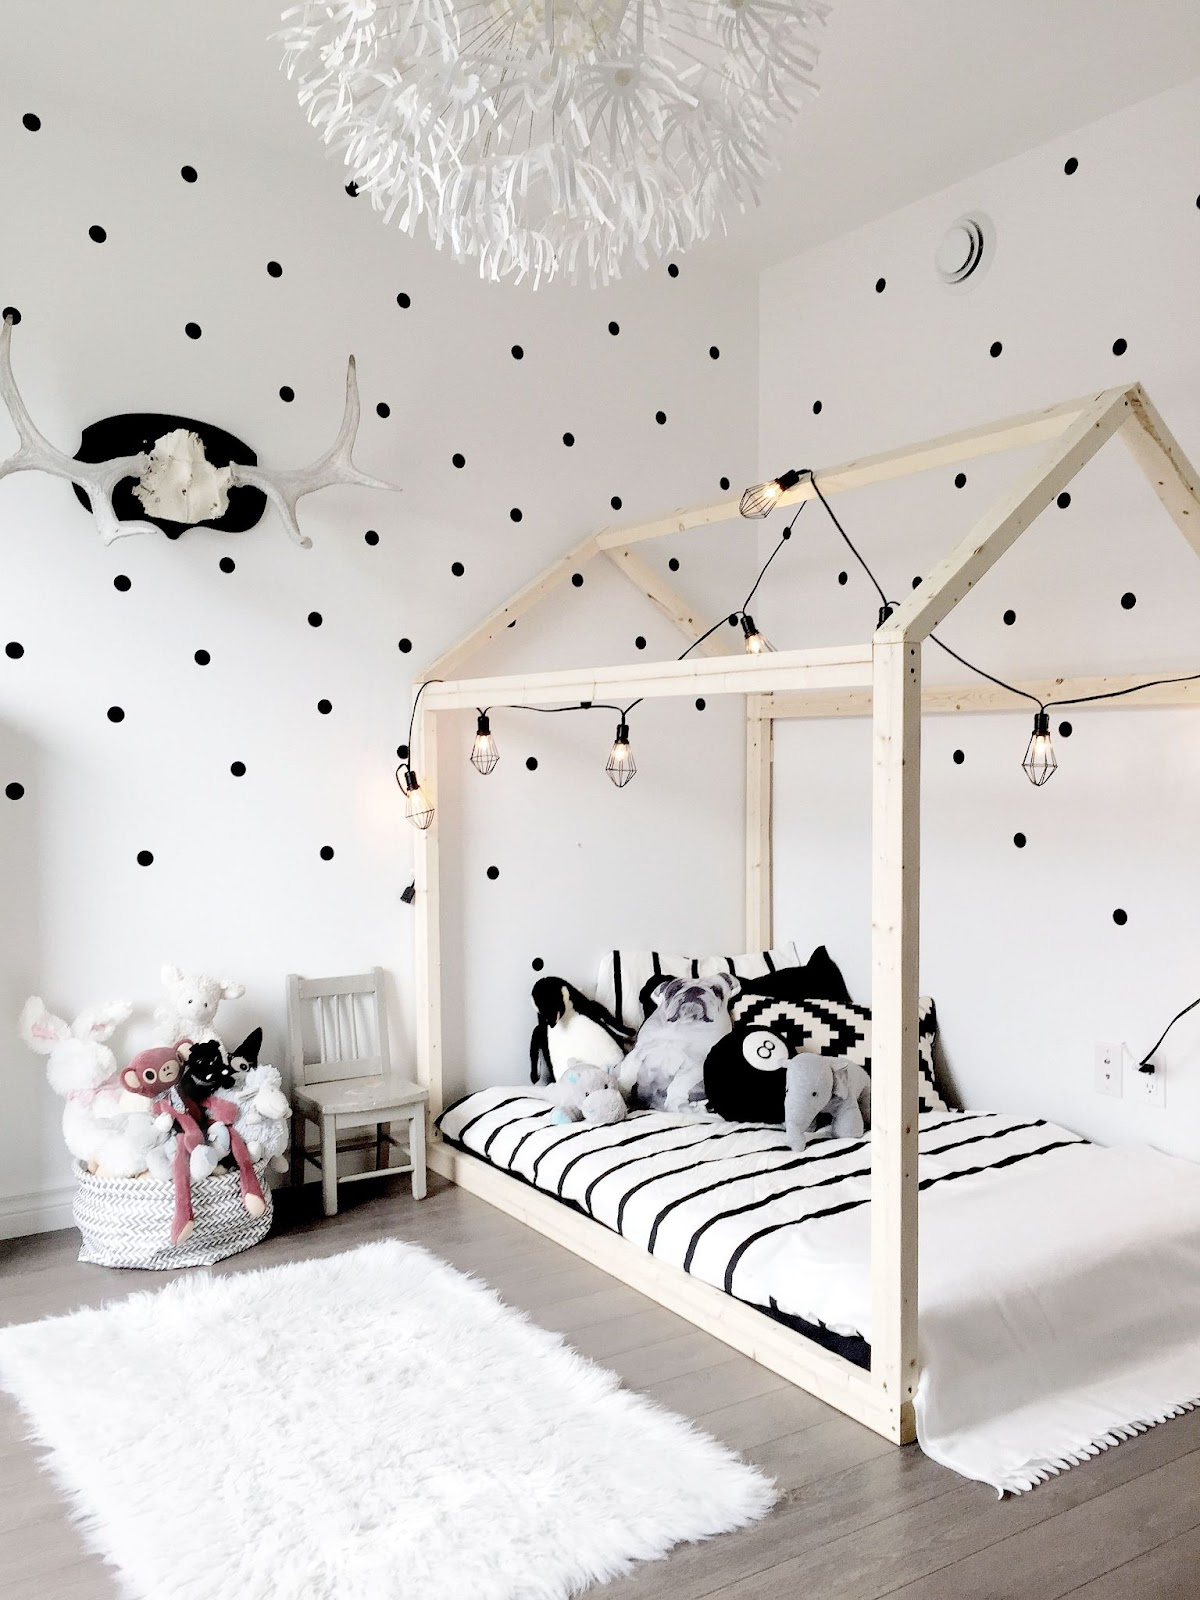 Give Your Boy's Wall the Polka Dot Treatment Boys Bedroom Painting Ideas